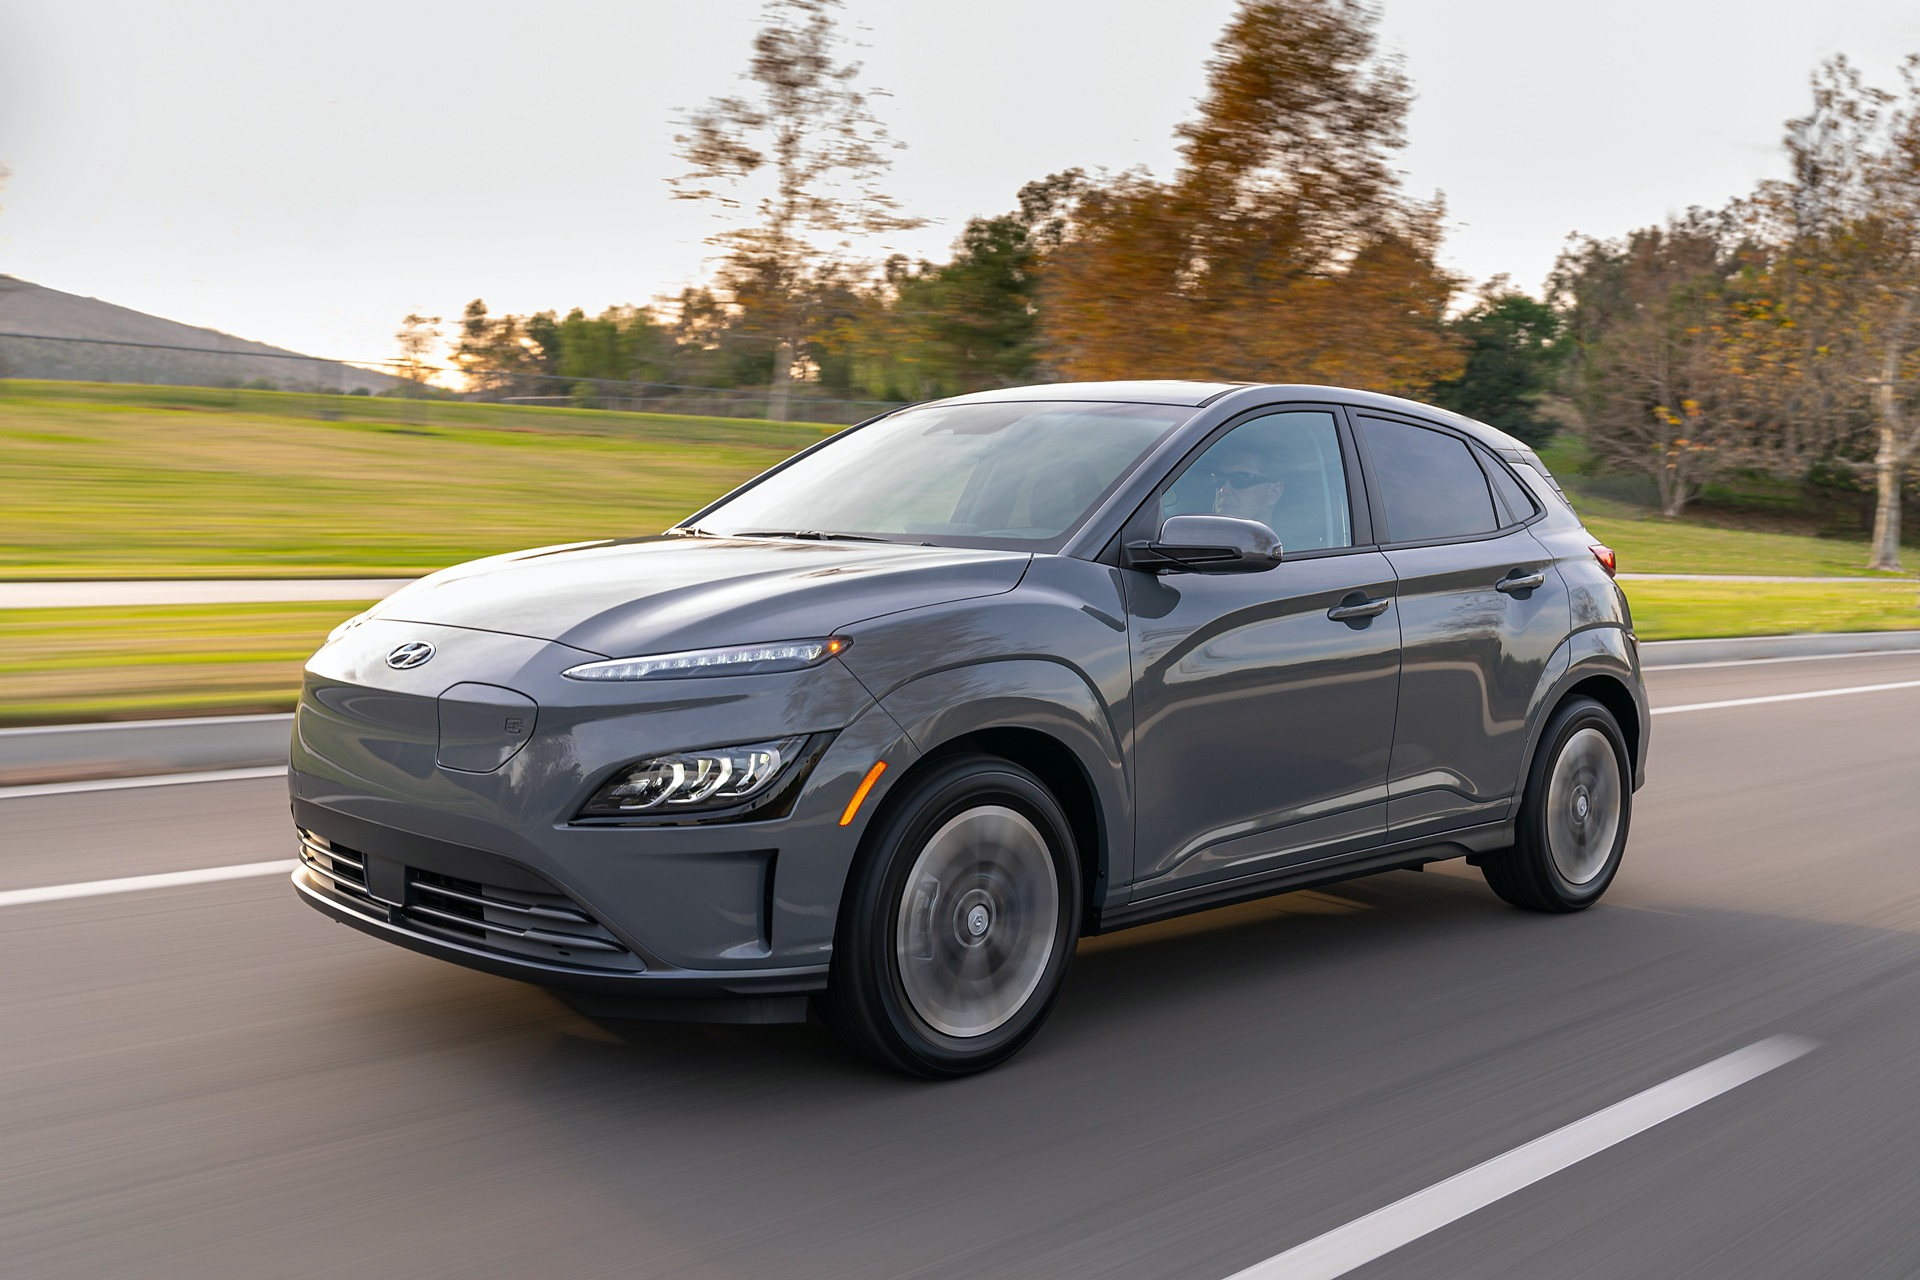 Affordable, all-electric: The 5 lowest-priced new EVs in the US